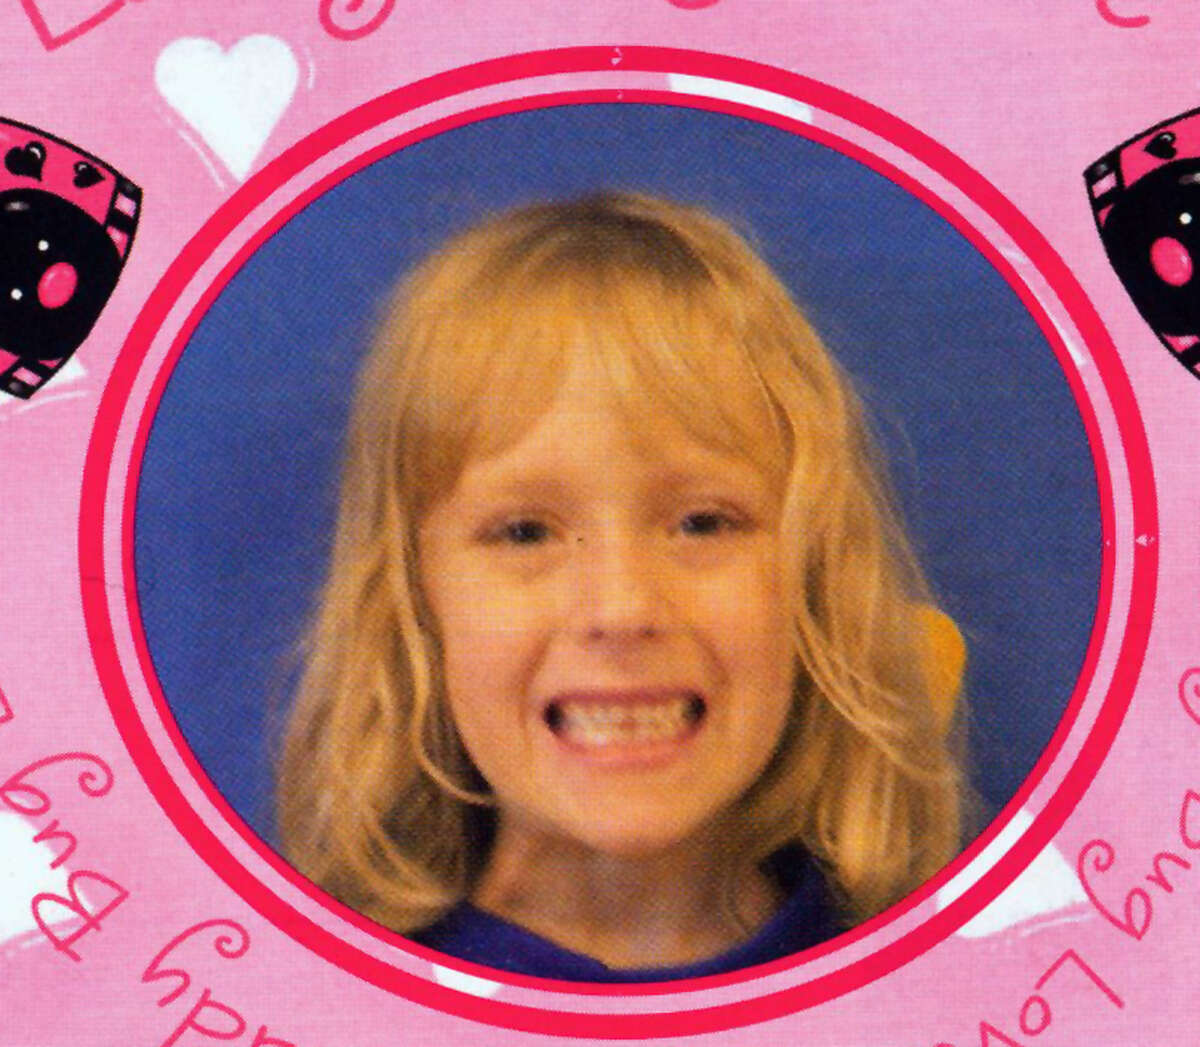 Sarah Brasse was ill-served by the state's safety net. She died in February 2009 of acute appendicitis at age 8.